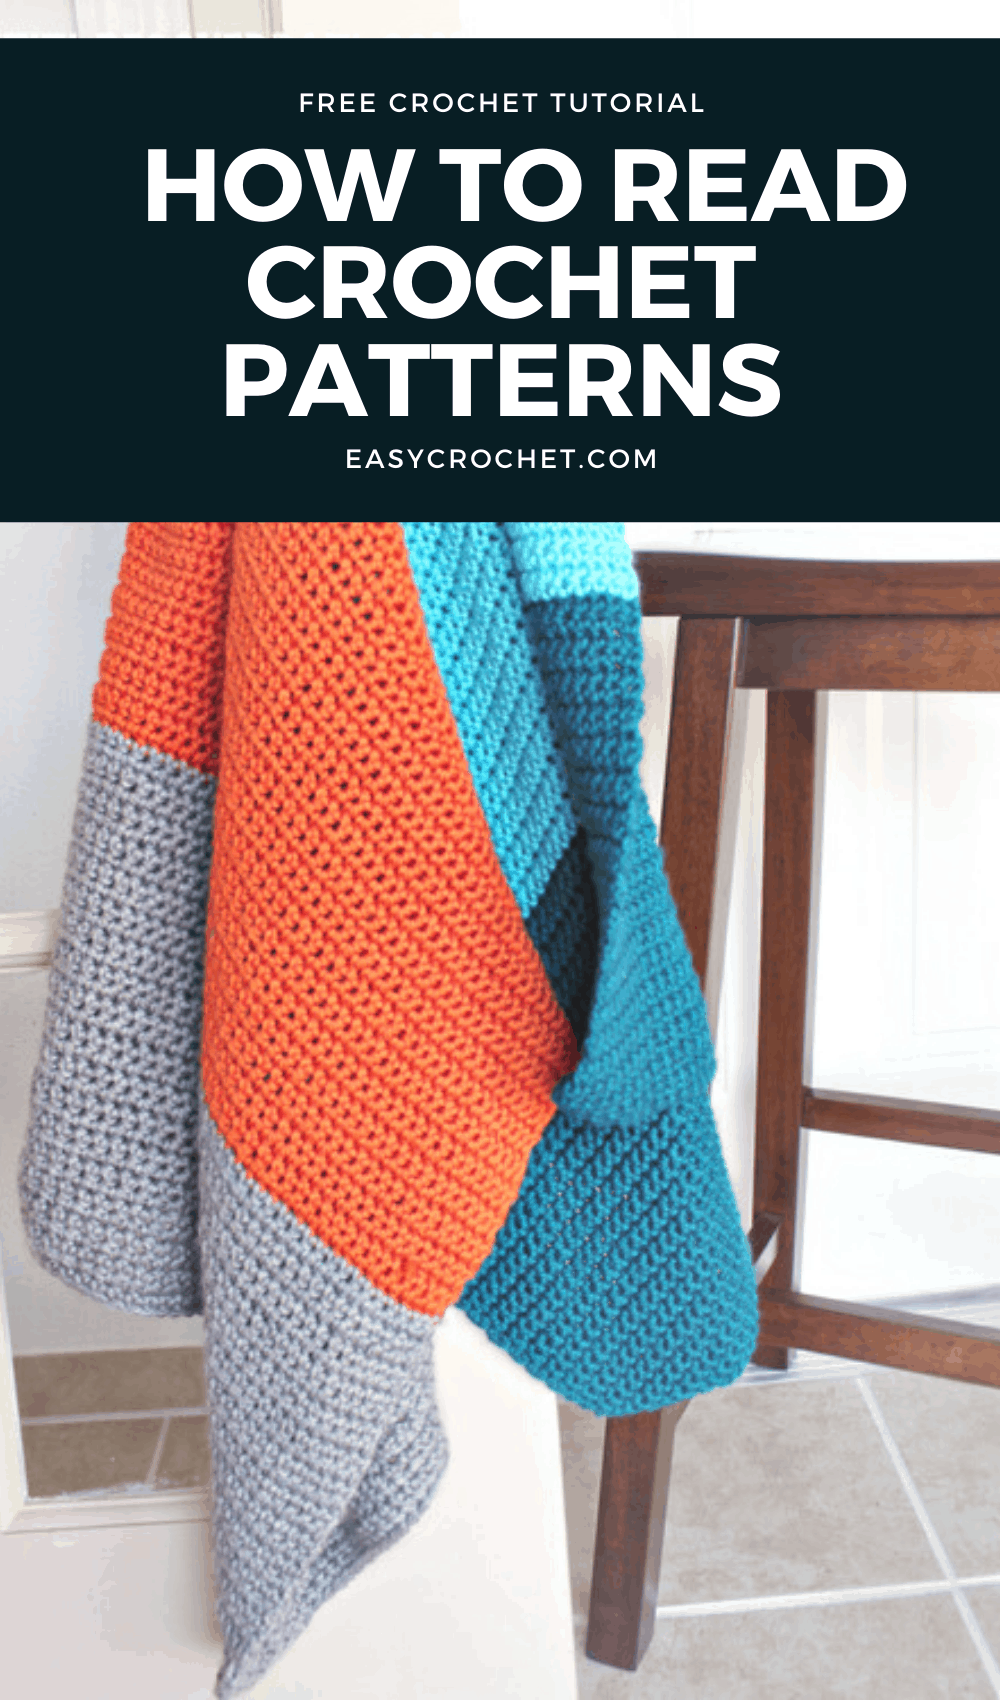 Learn how to read crochet patterns for beginners. Broken down step by step so you can start crocheting right away! via @easycrochetcom